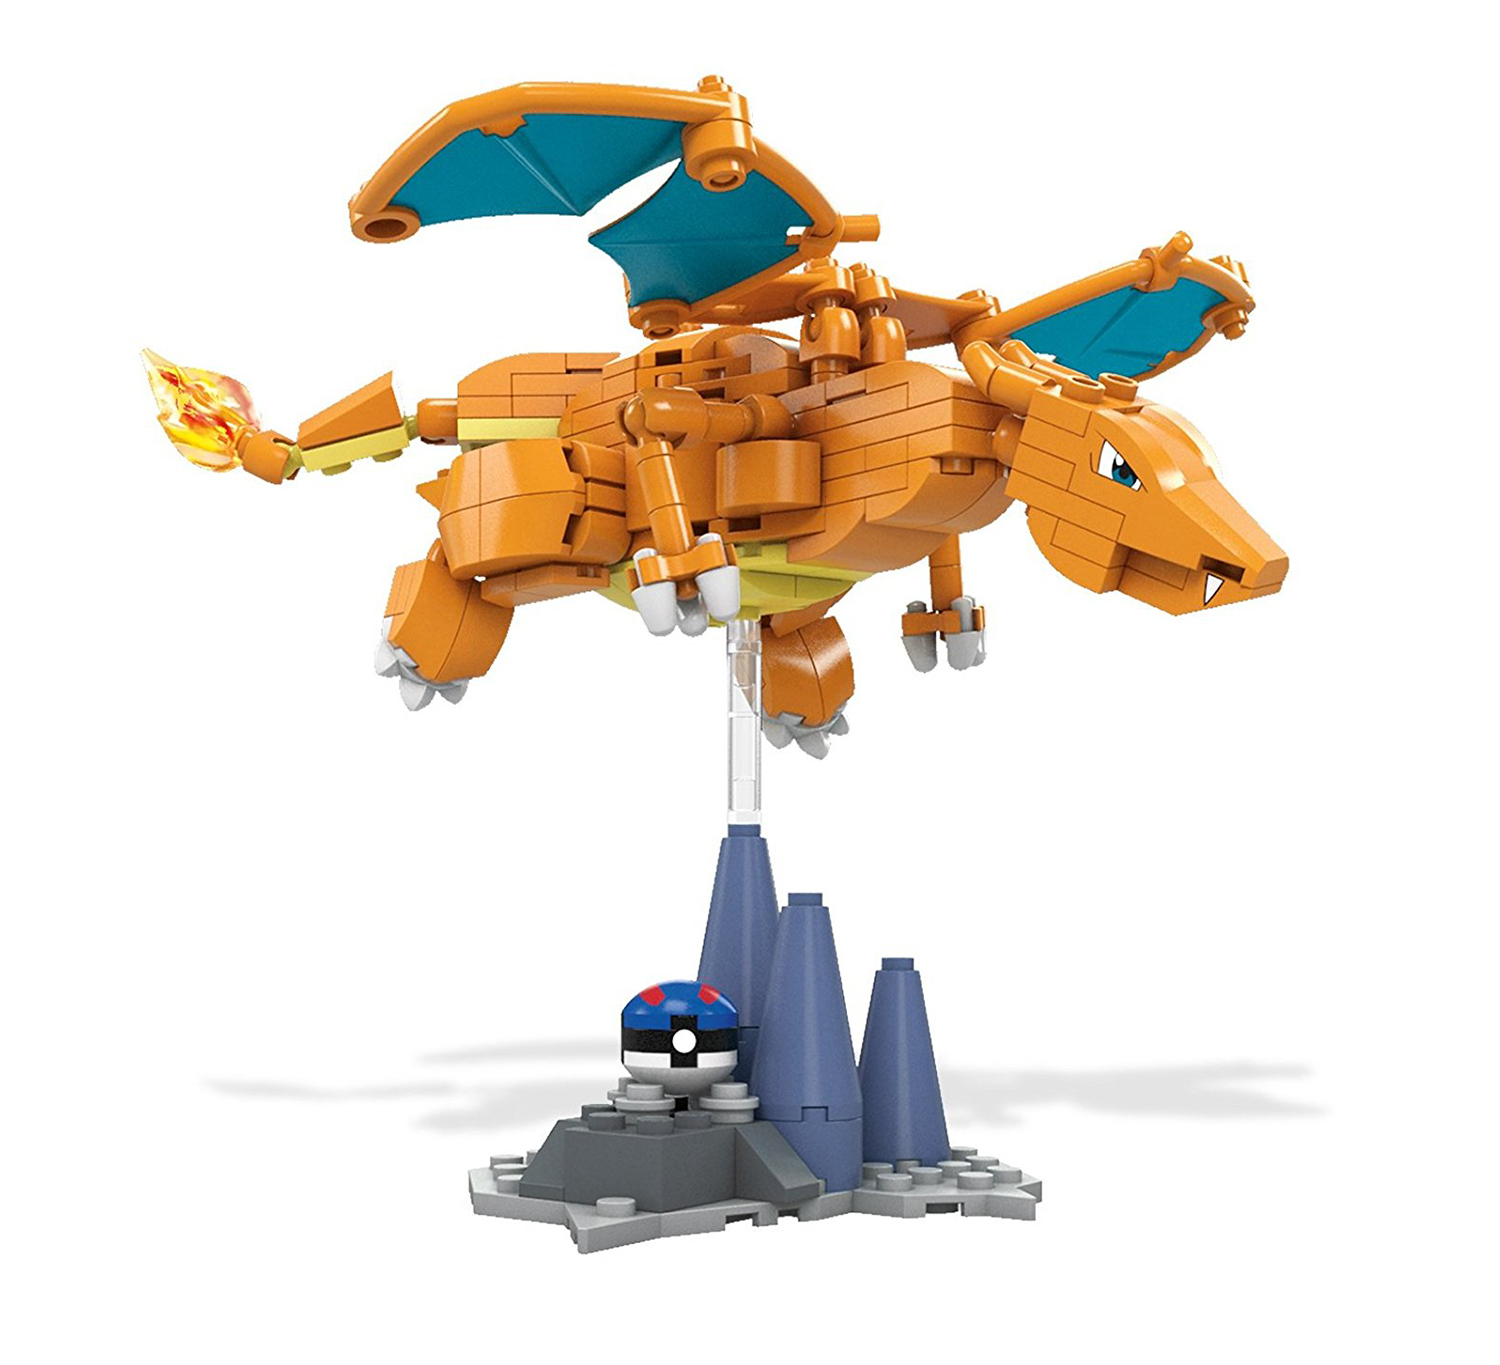 Mega Construx Pokemon Charizard Building Set